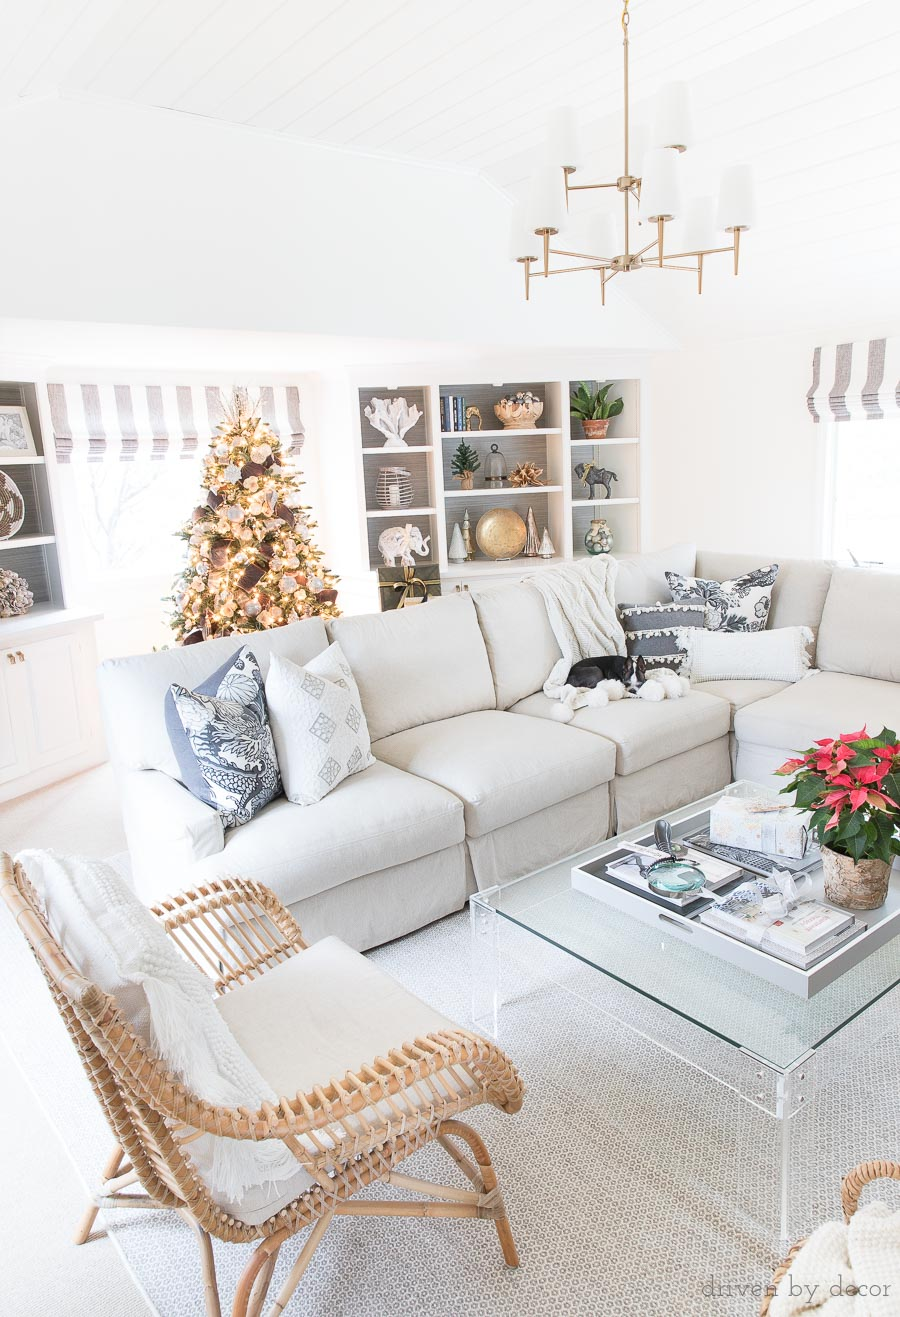 Love this cozy family room decorated for Christmas! Includes two-tiered chandelier, sectional, rattan chair, acrylic coffee table, and more!